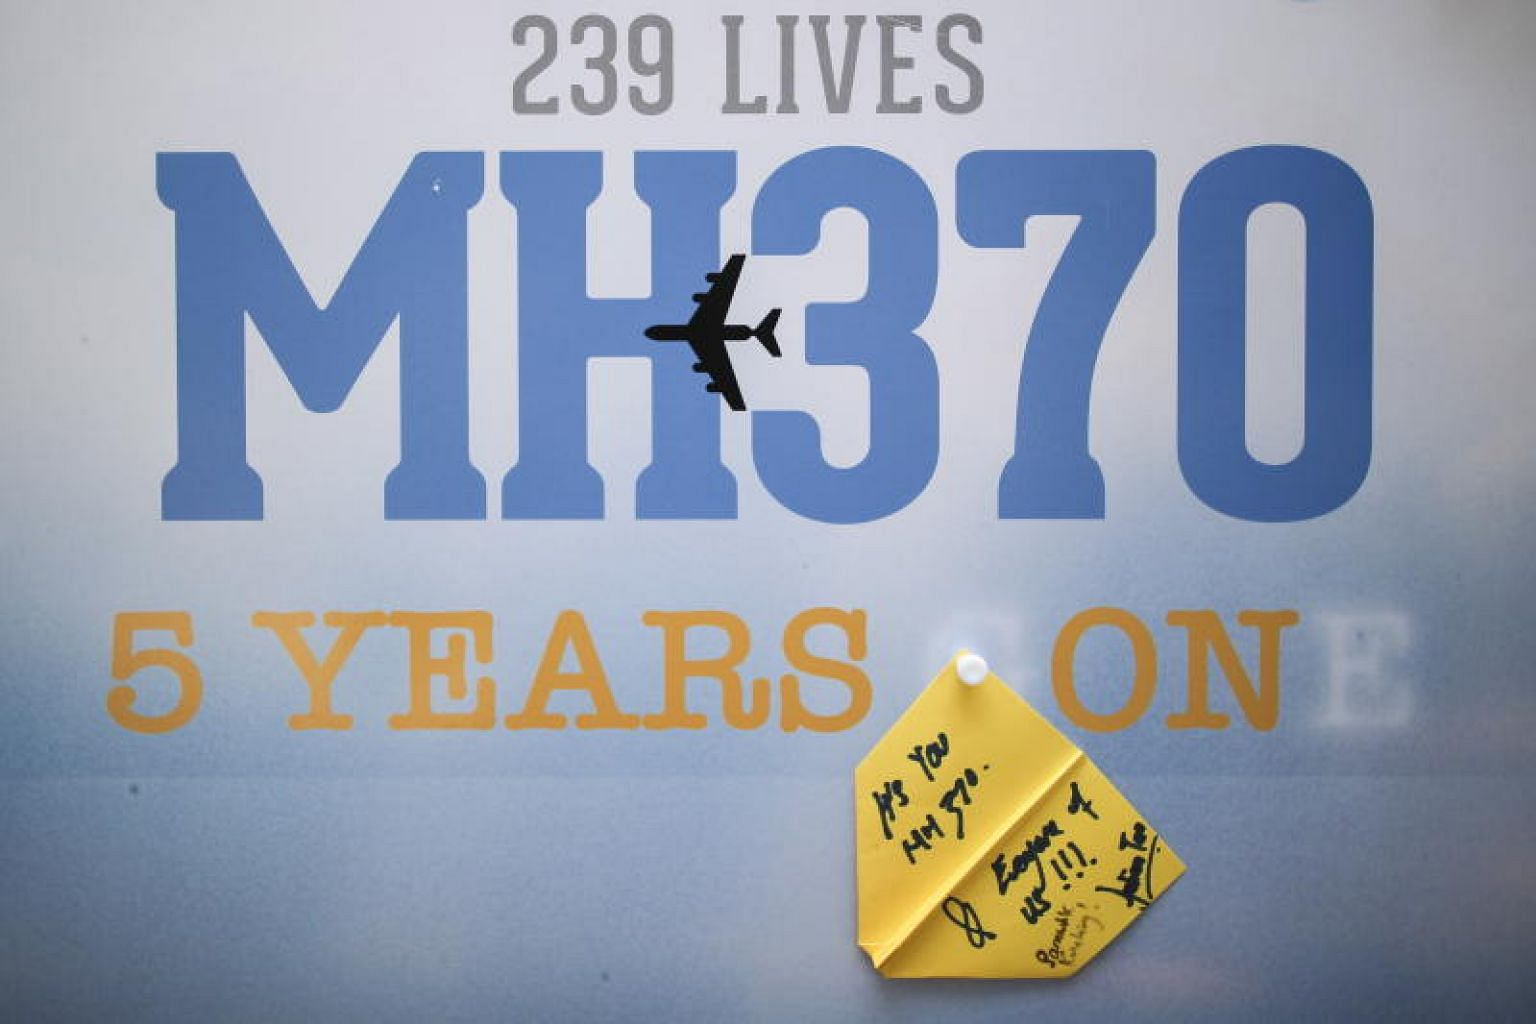 Latest MH370 | The Straits Times